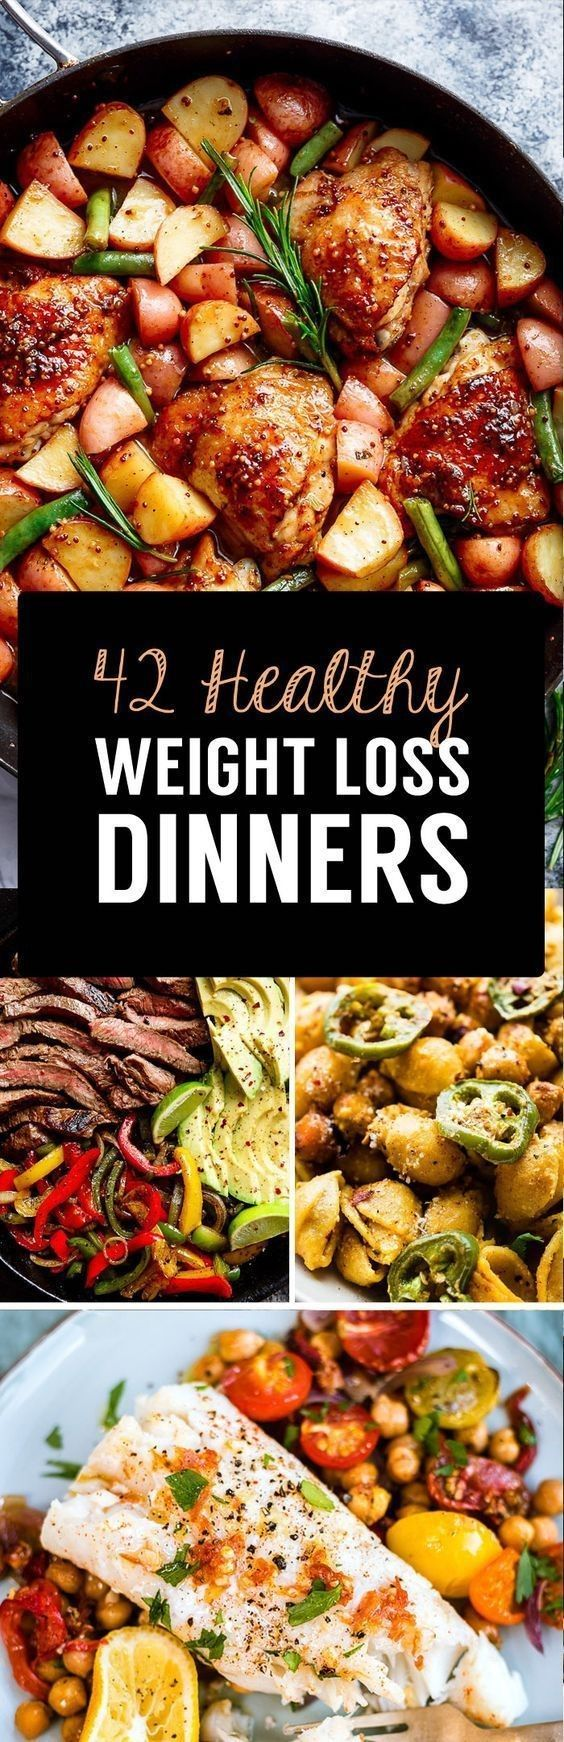 Tucson medical weight loss cost image 5